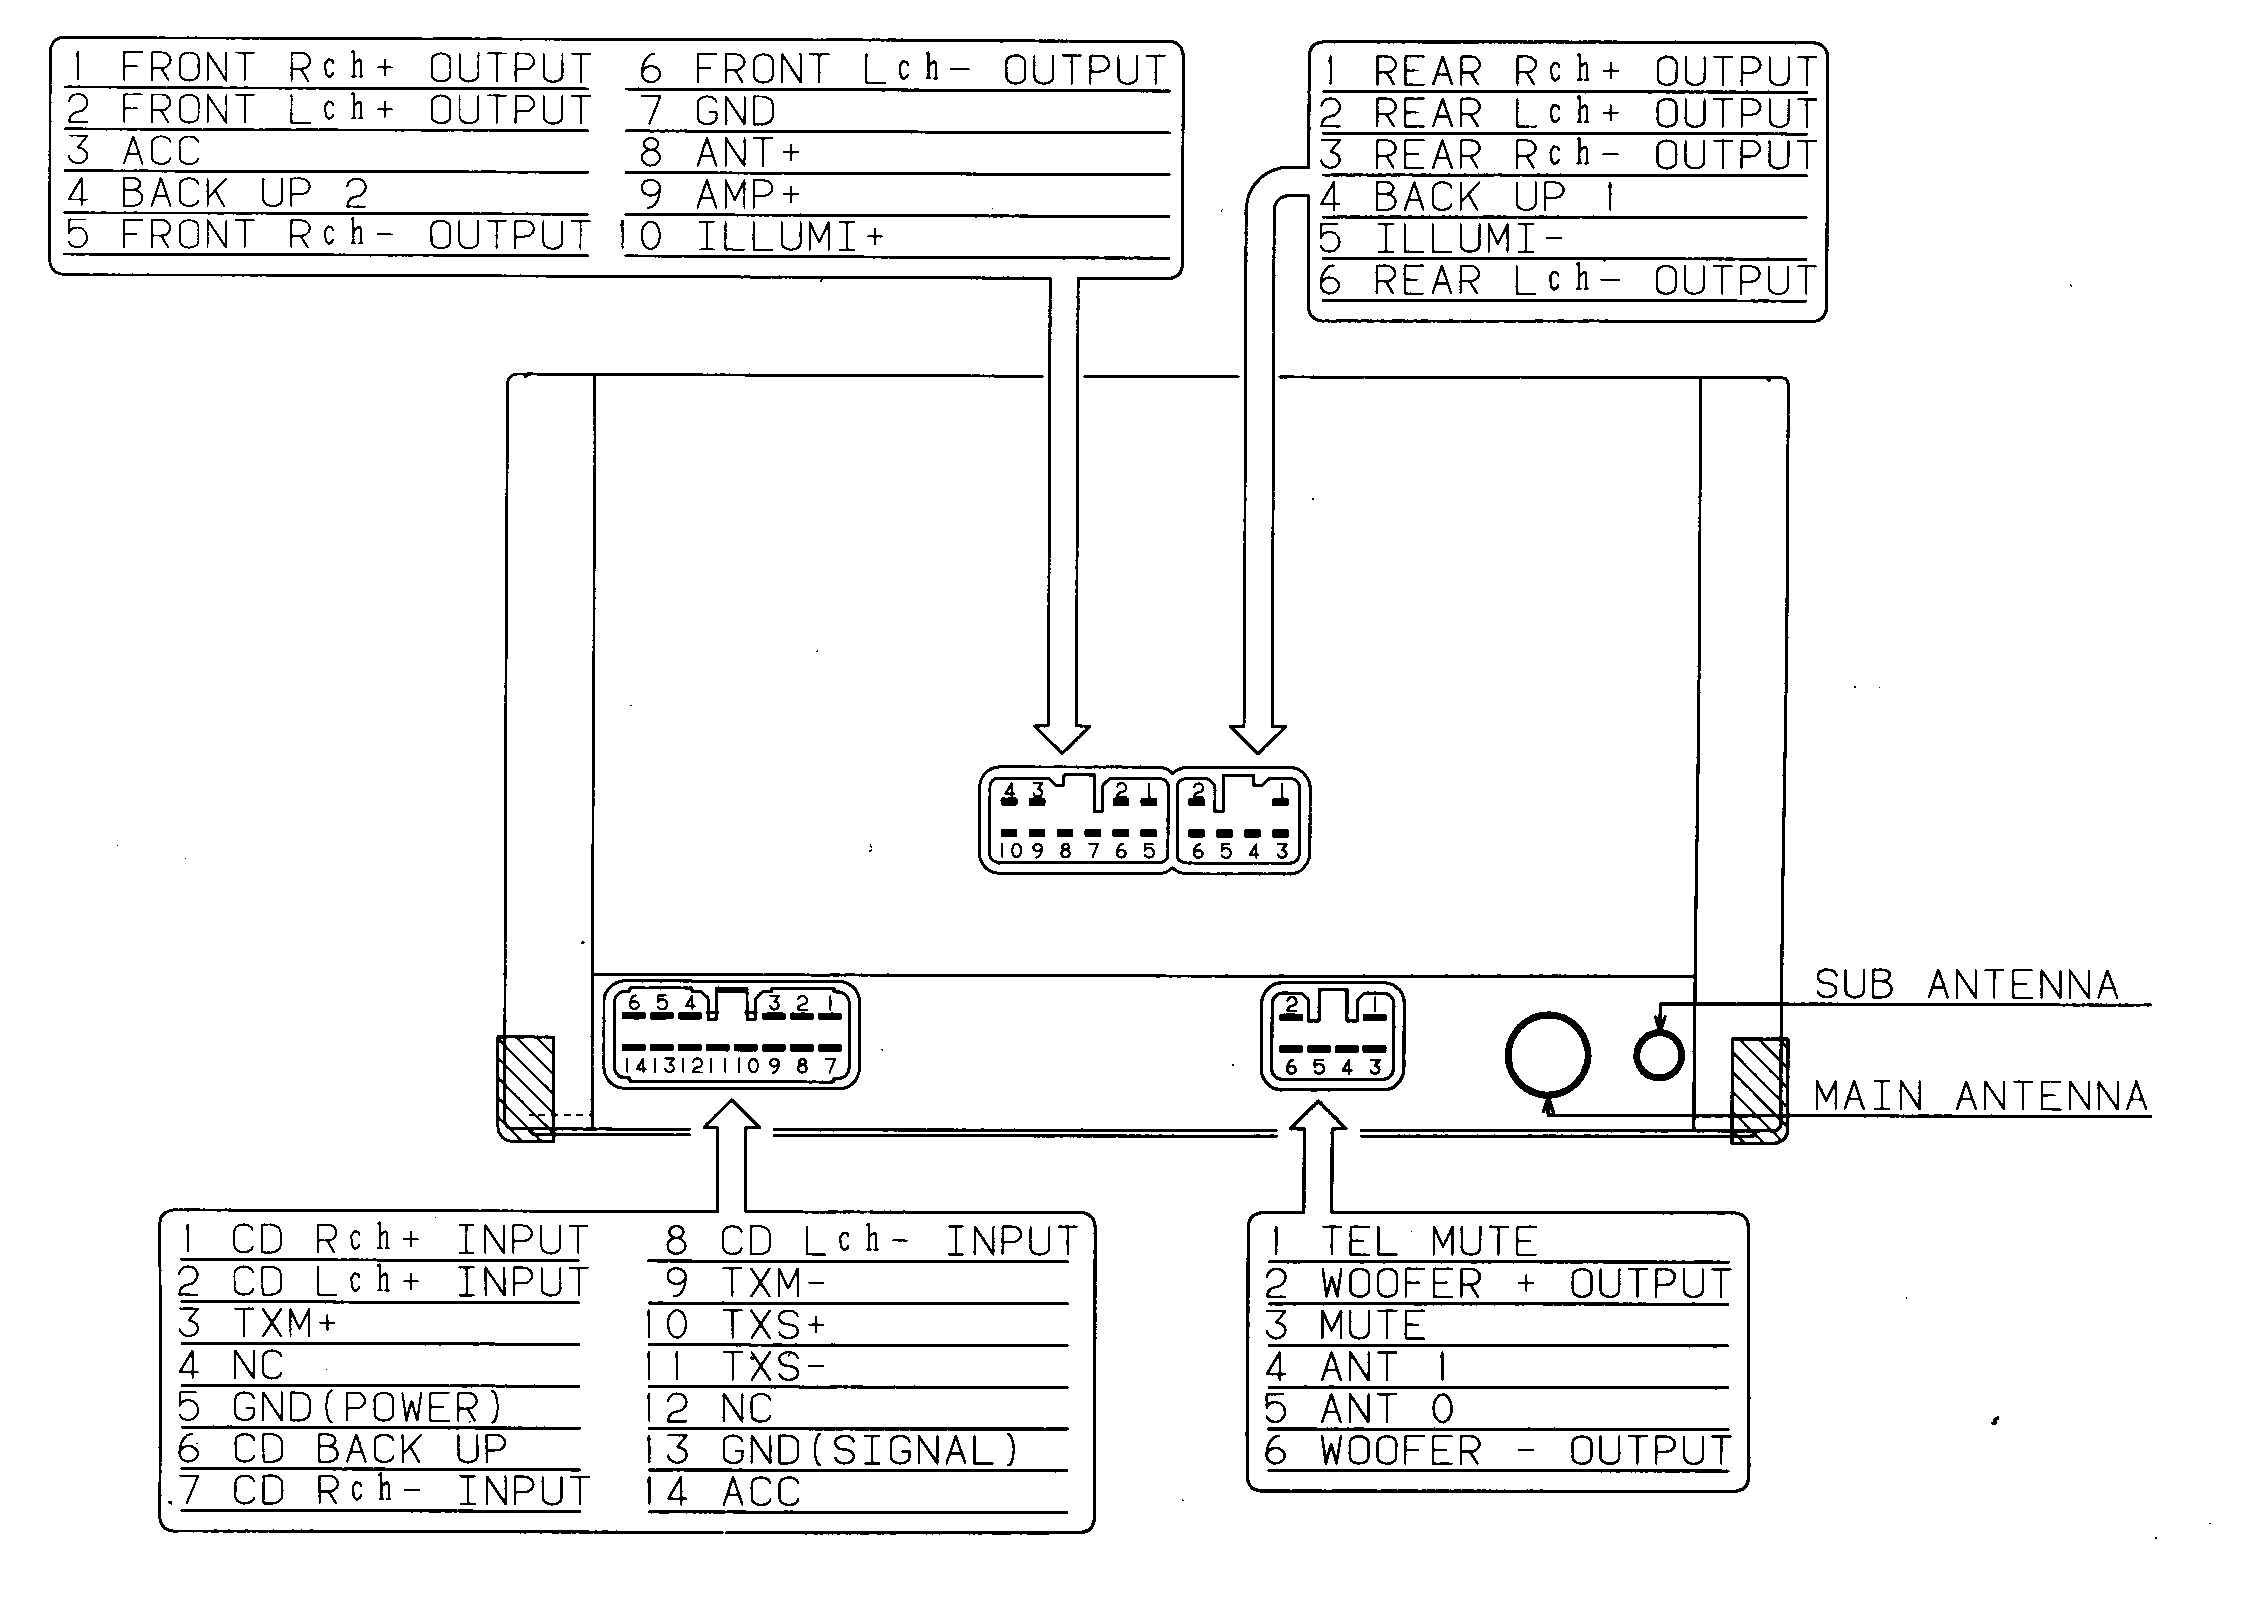 Lexus car stereo wiring diagram harness pinout connector wire lexus rx330 radio wiring diagram lexus rx330 parts diagram 2002 Lexus RX300 Interior at n-0.co